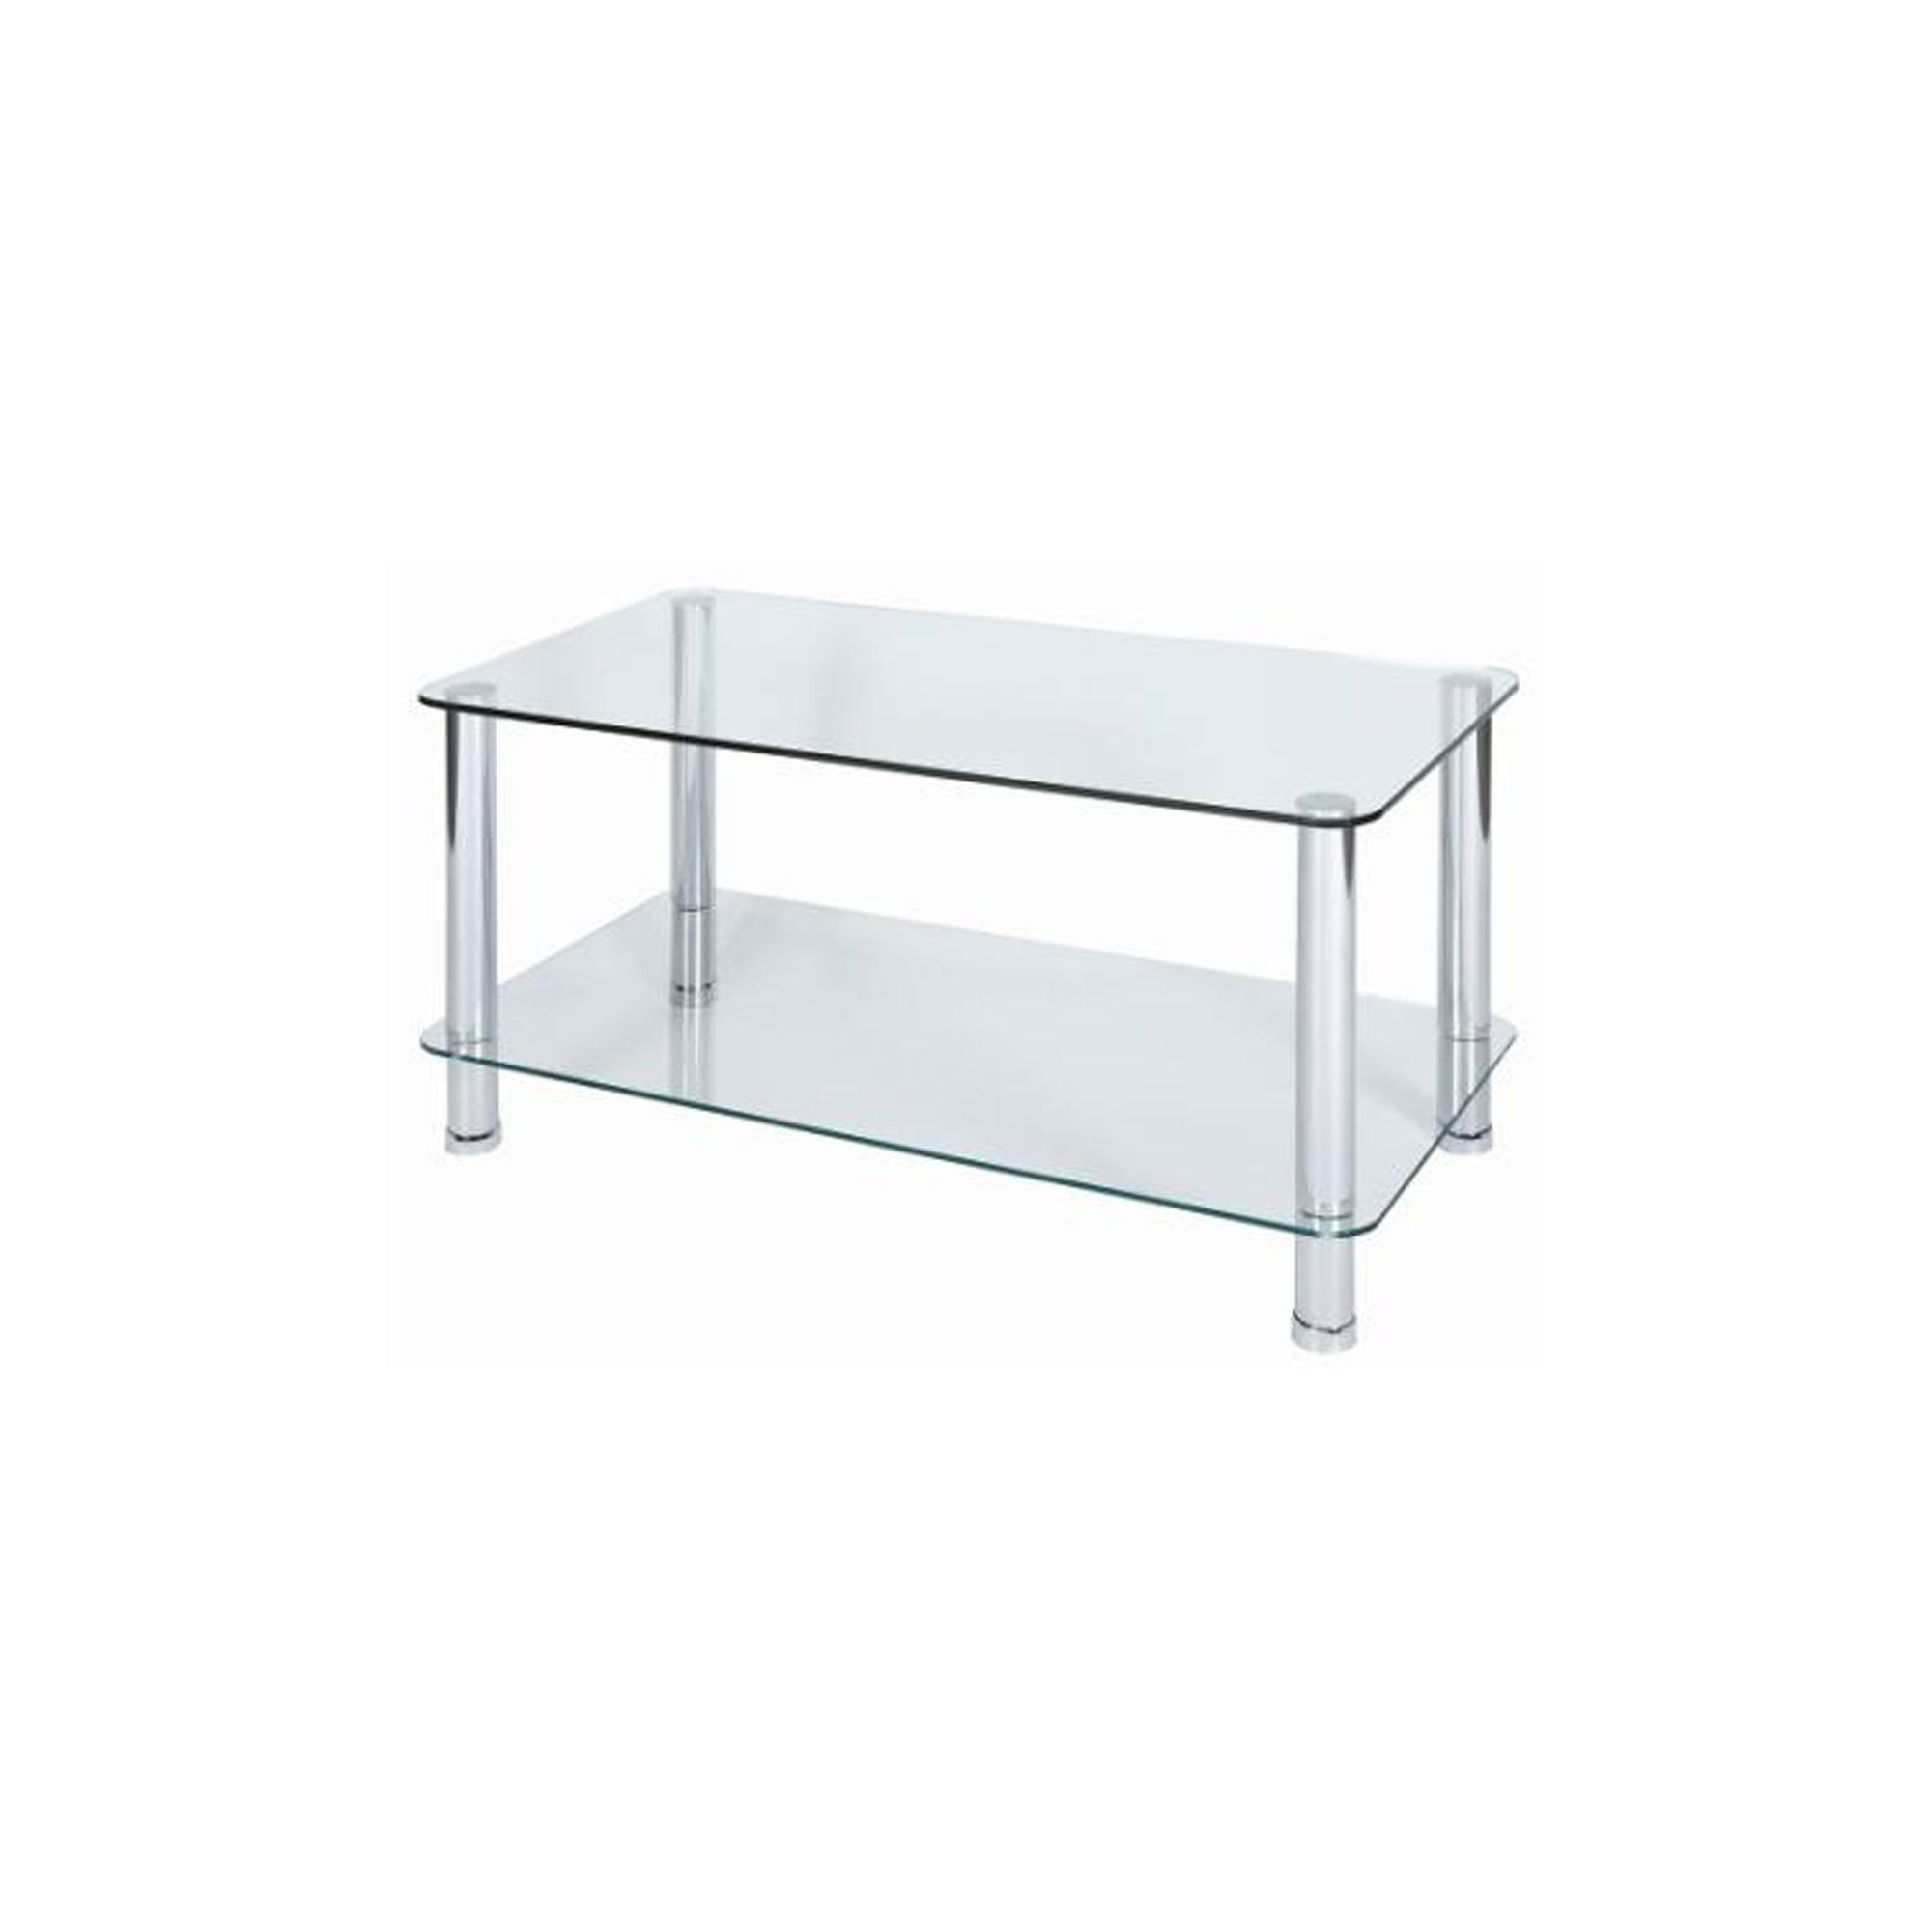 Furniture Boyne Black Glass Coffee Table With Chrome Legs Special Offers